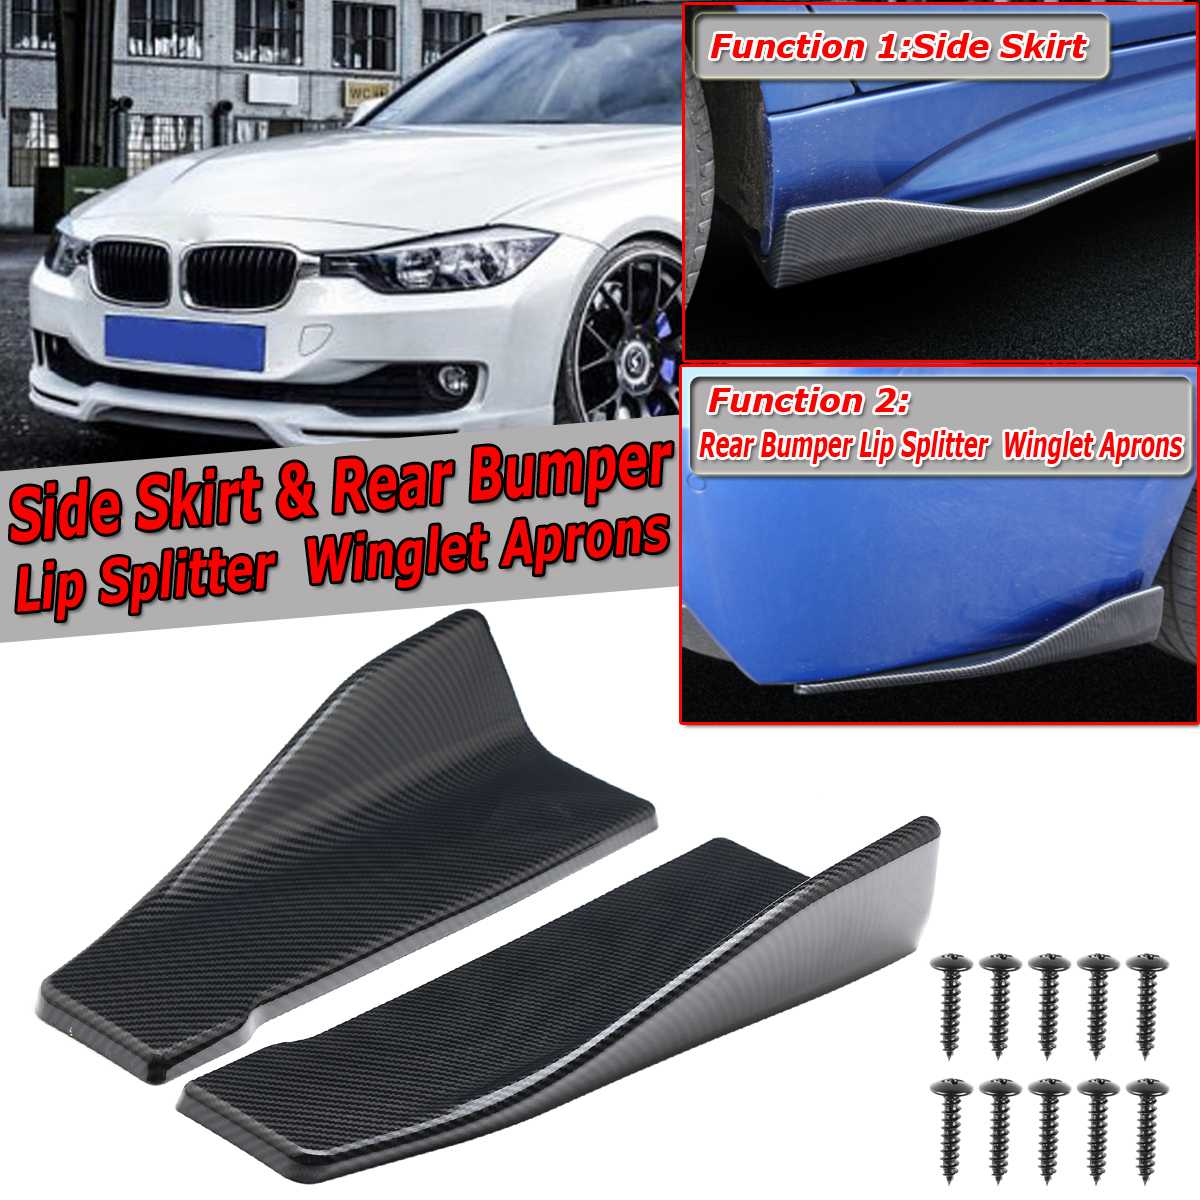 2pcs 35cm/48cm Universal Car Side Skirt & Rear Bumper Diffuser Spoiler Lip Splitter Winglet Aprons Carbon Fiber For Benz For BMW